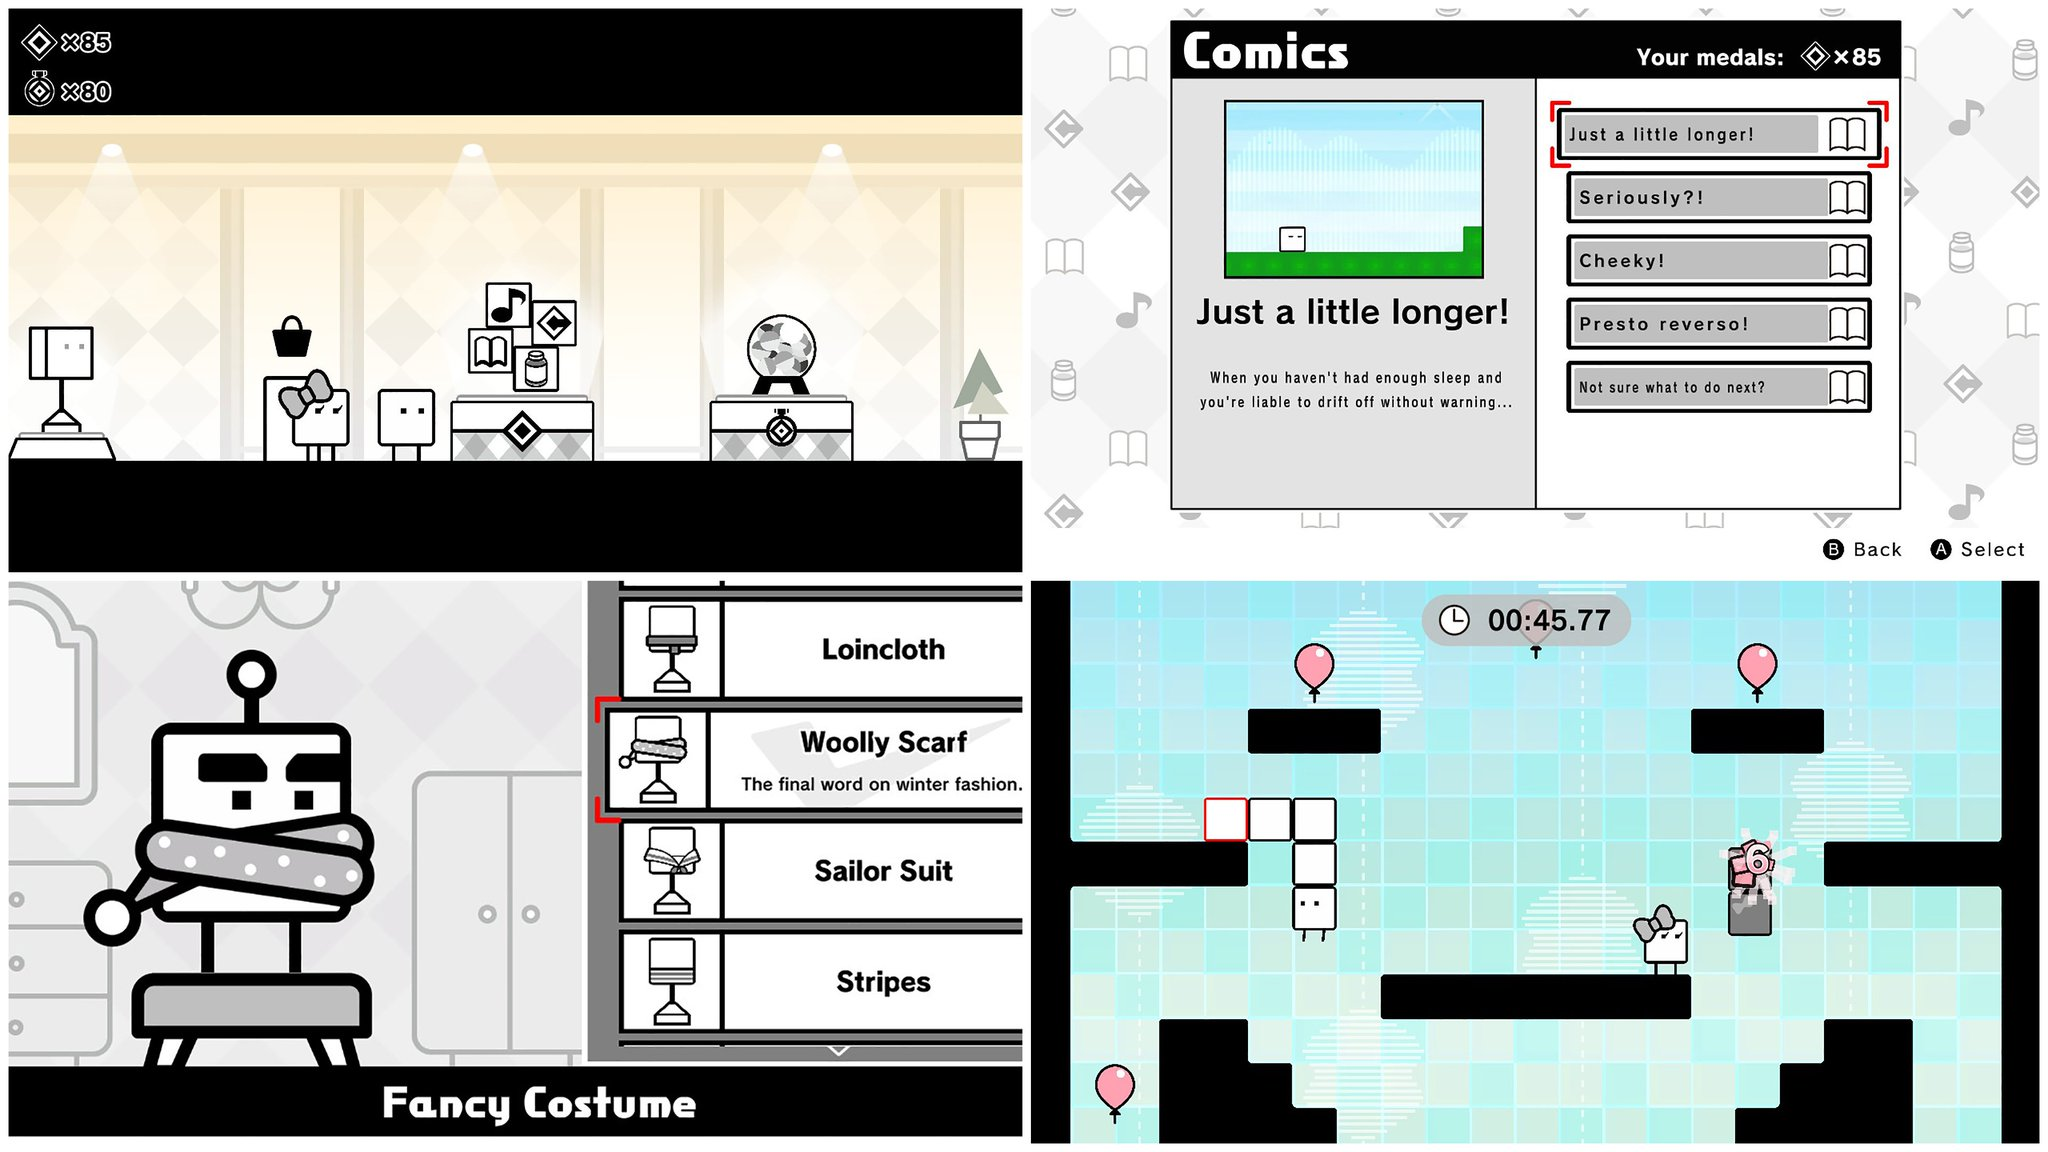 Need a break from stacking boxes and saving the world in #BOXBOY! + BOXGIRL!? Redeem your Target Medals for in-game rewards like assist items, music tracks, or comics. Customize the look of your characters, and even embark on a special Balloon Challenge minigame for extra medals. https://t.co/igYpCBtJGM